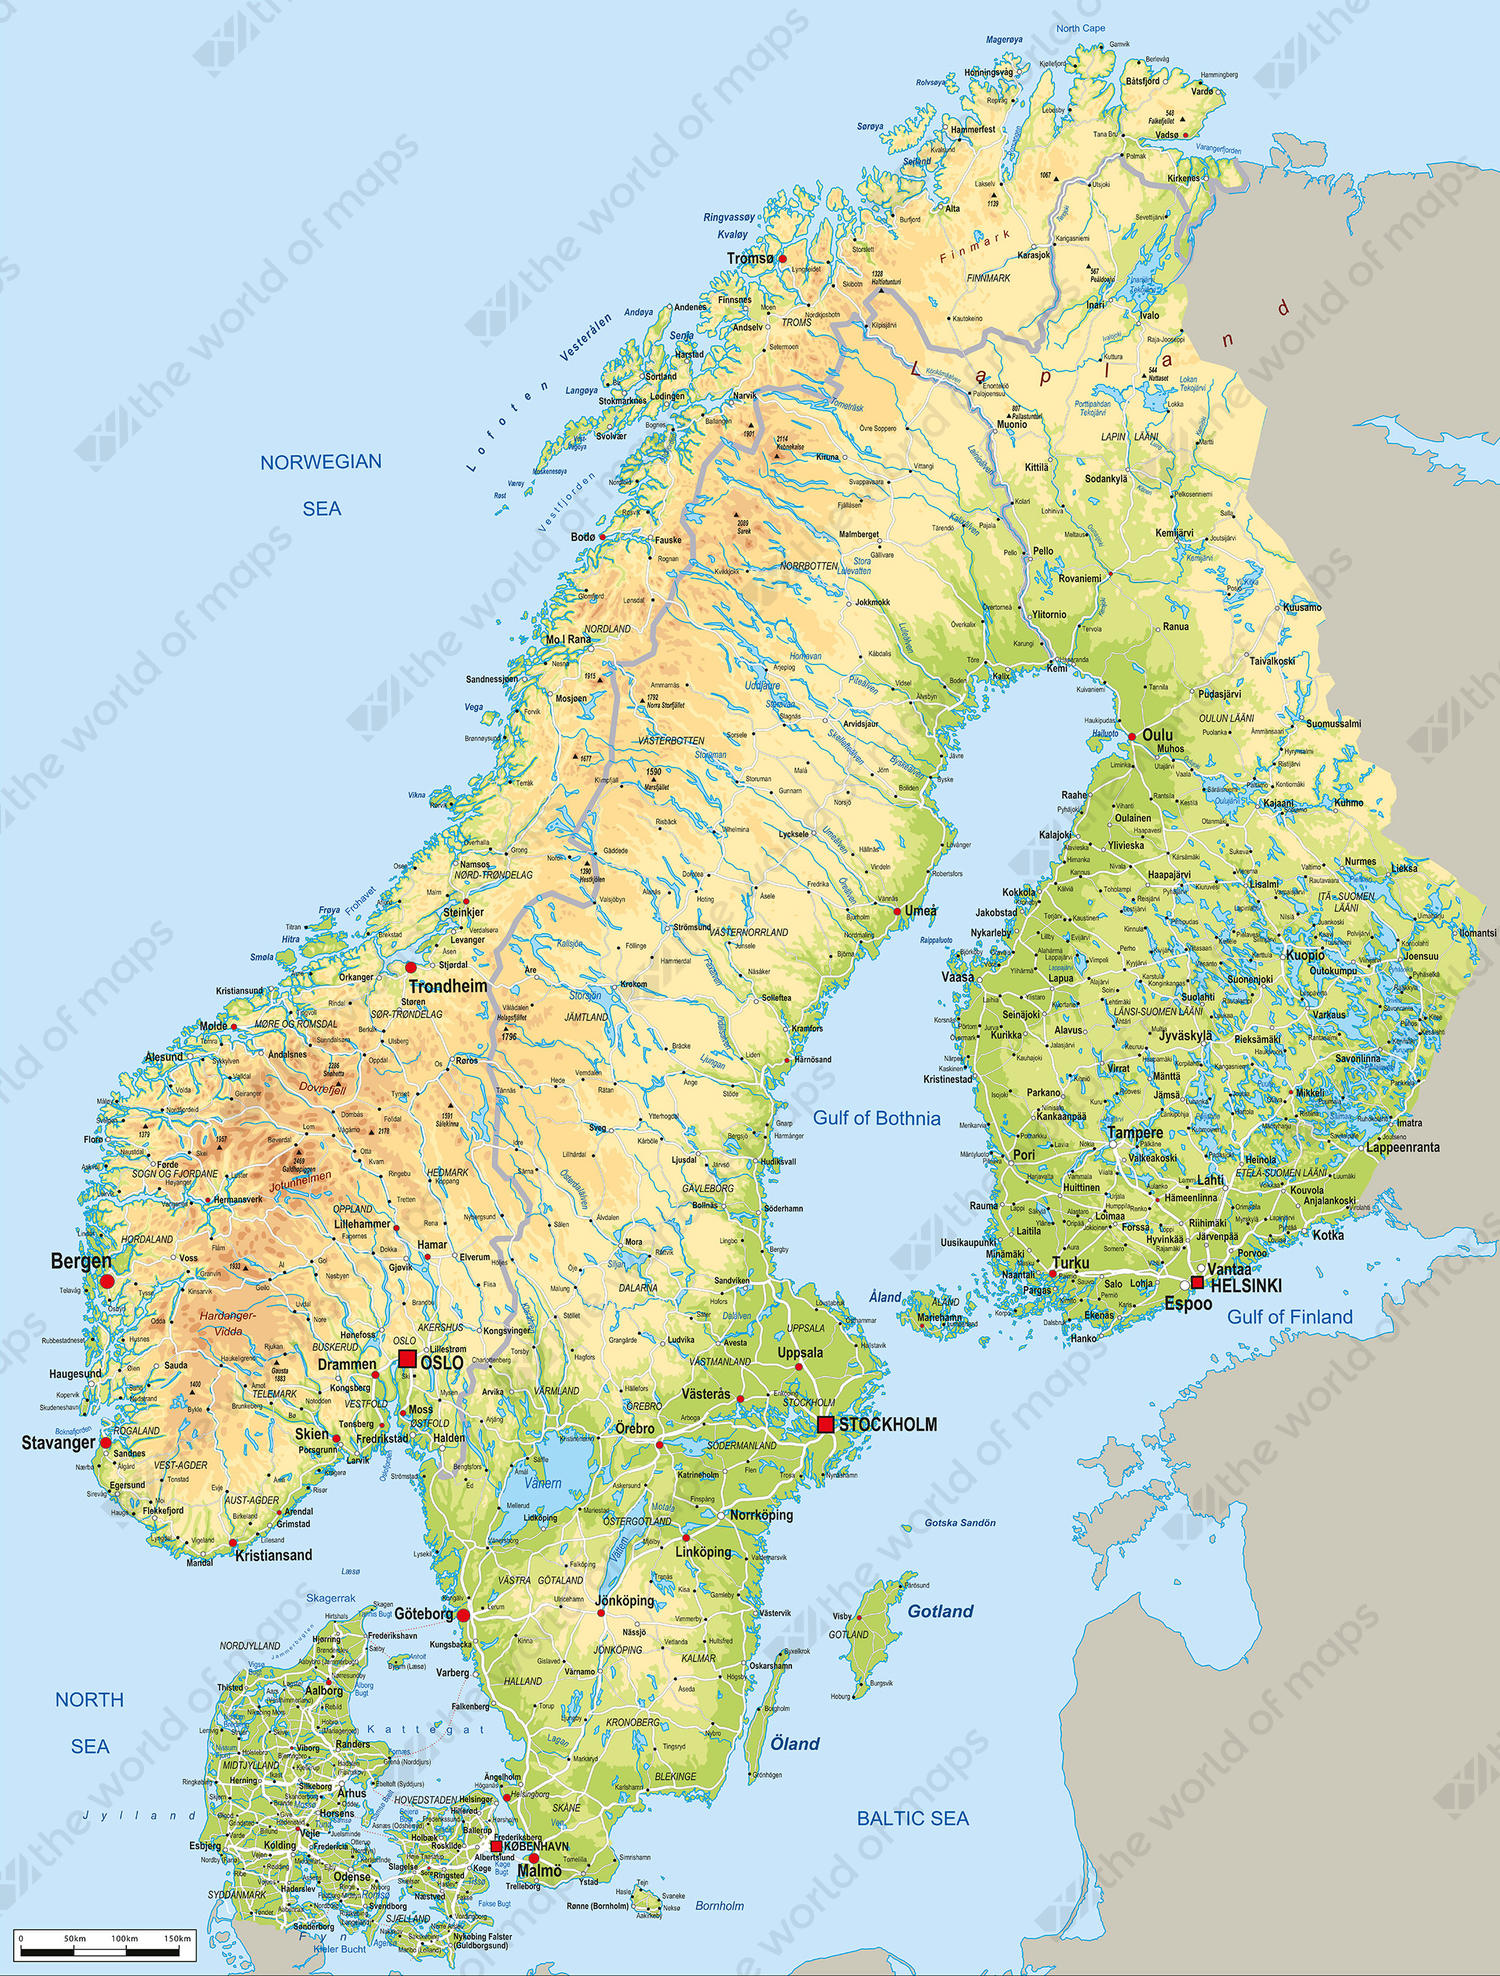 Digital Map Scandinavia Physical 54 | The World of Maps.com